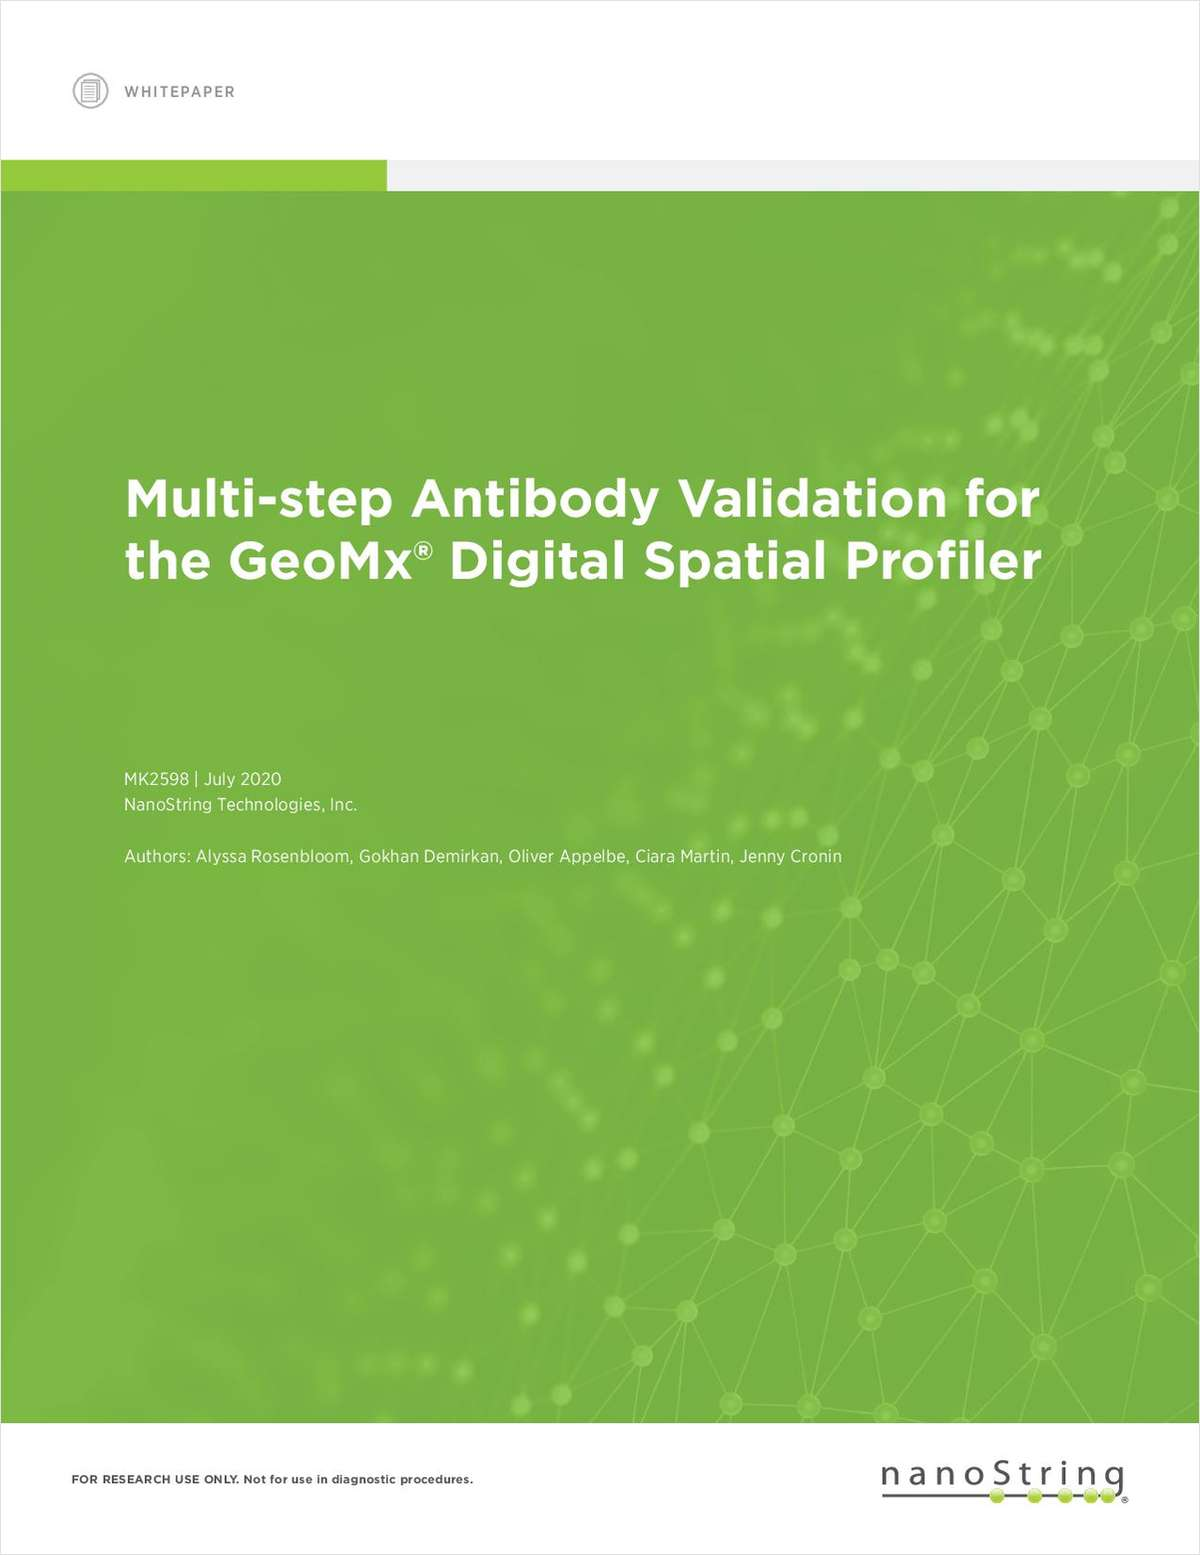 Multi-step Antibody Validation for the GeoMx Digital Spatial Profiler